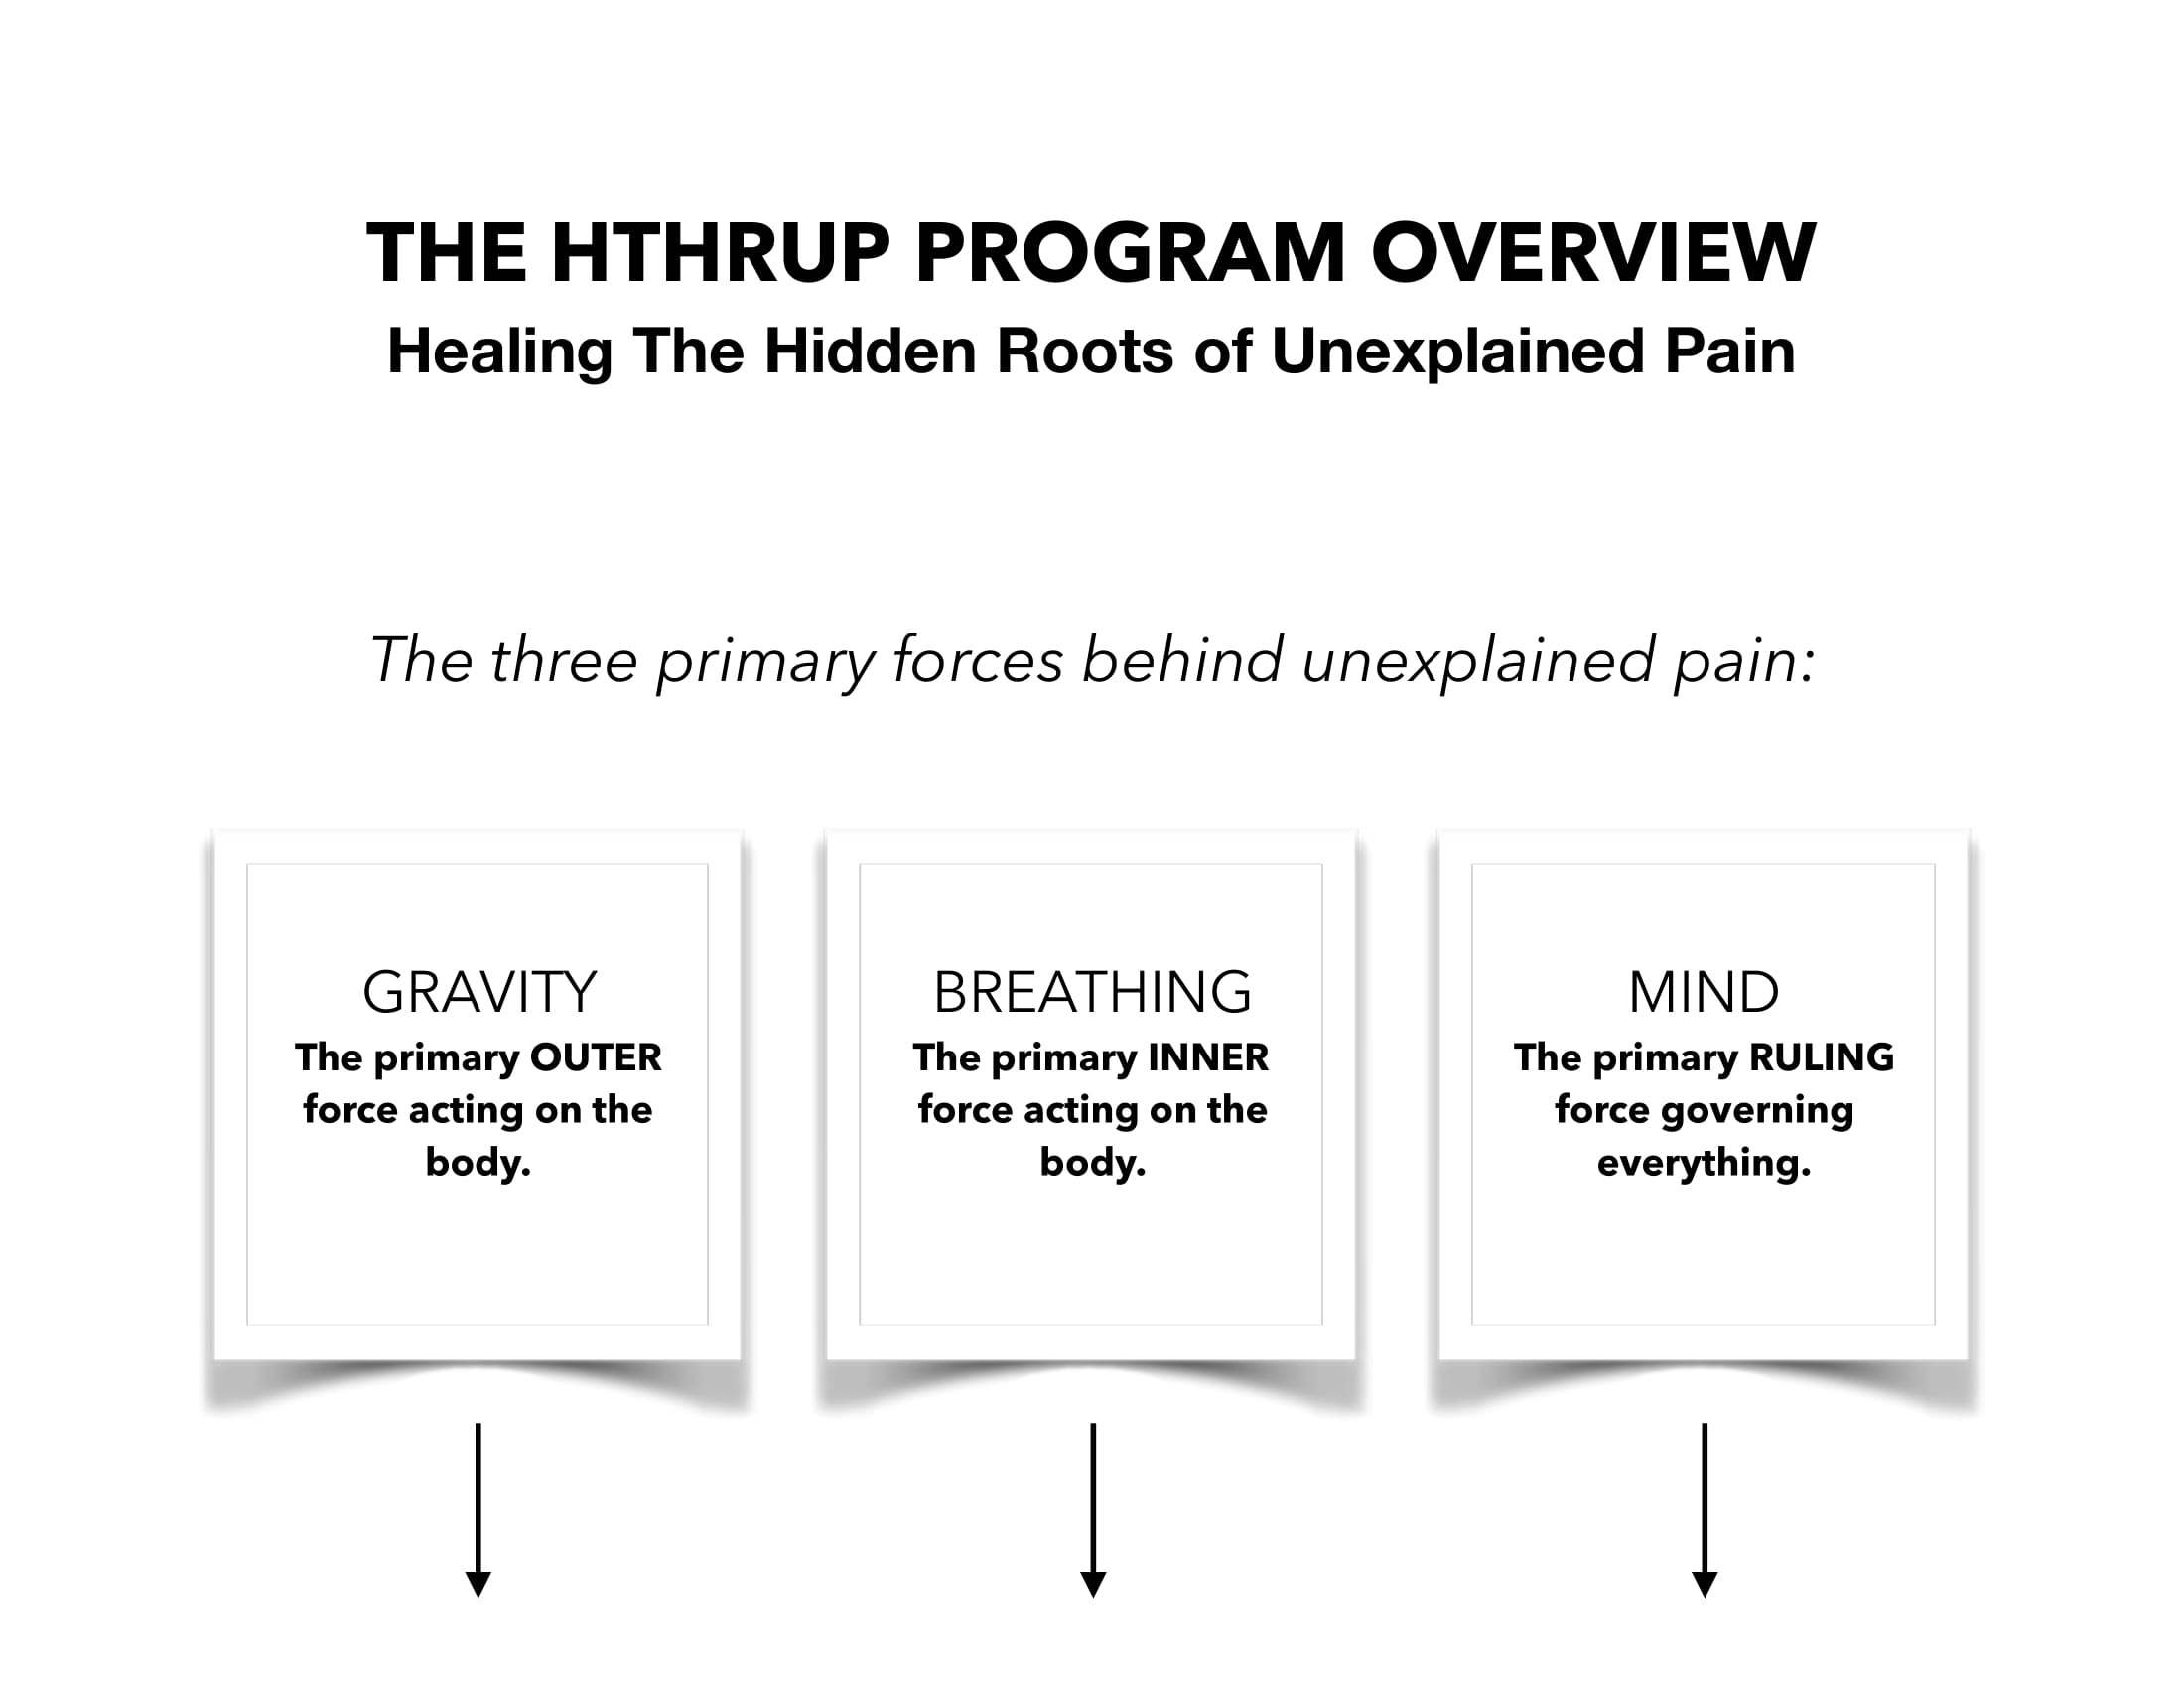 THE HTHRUP PROGRAM GRAPHIC OVERVIEW WITH TITLE-1.jpg